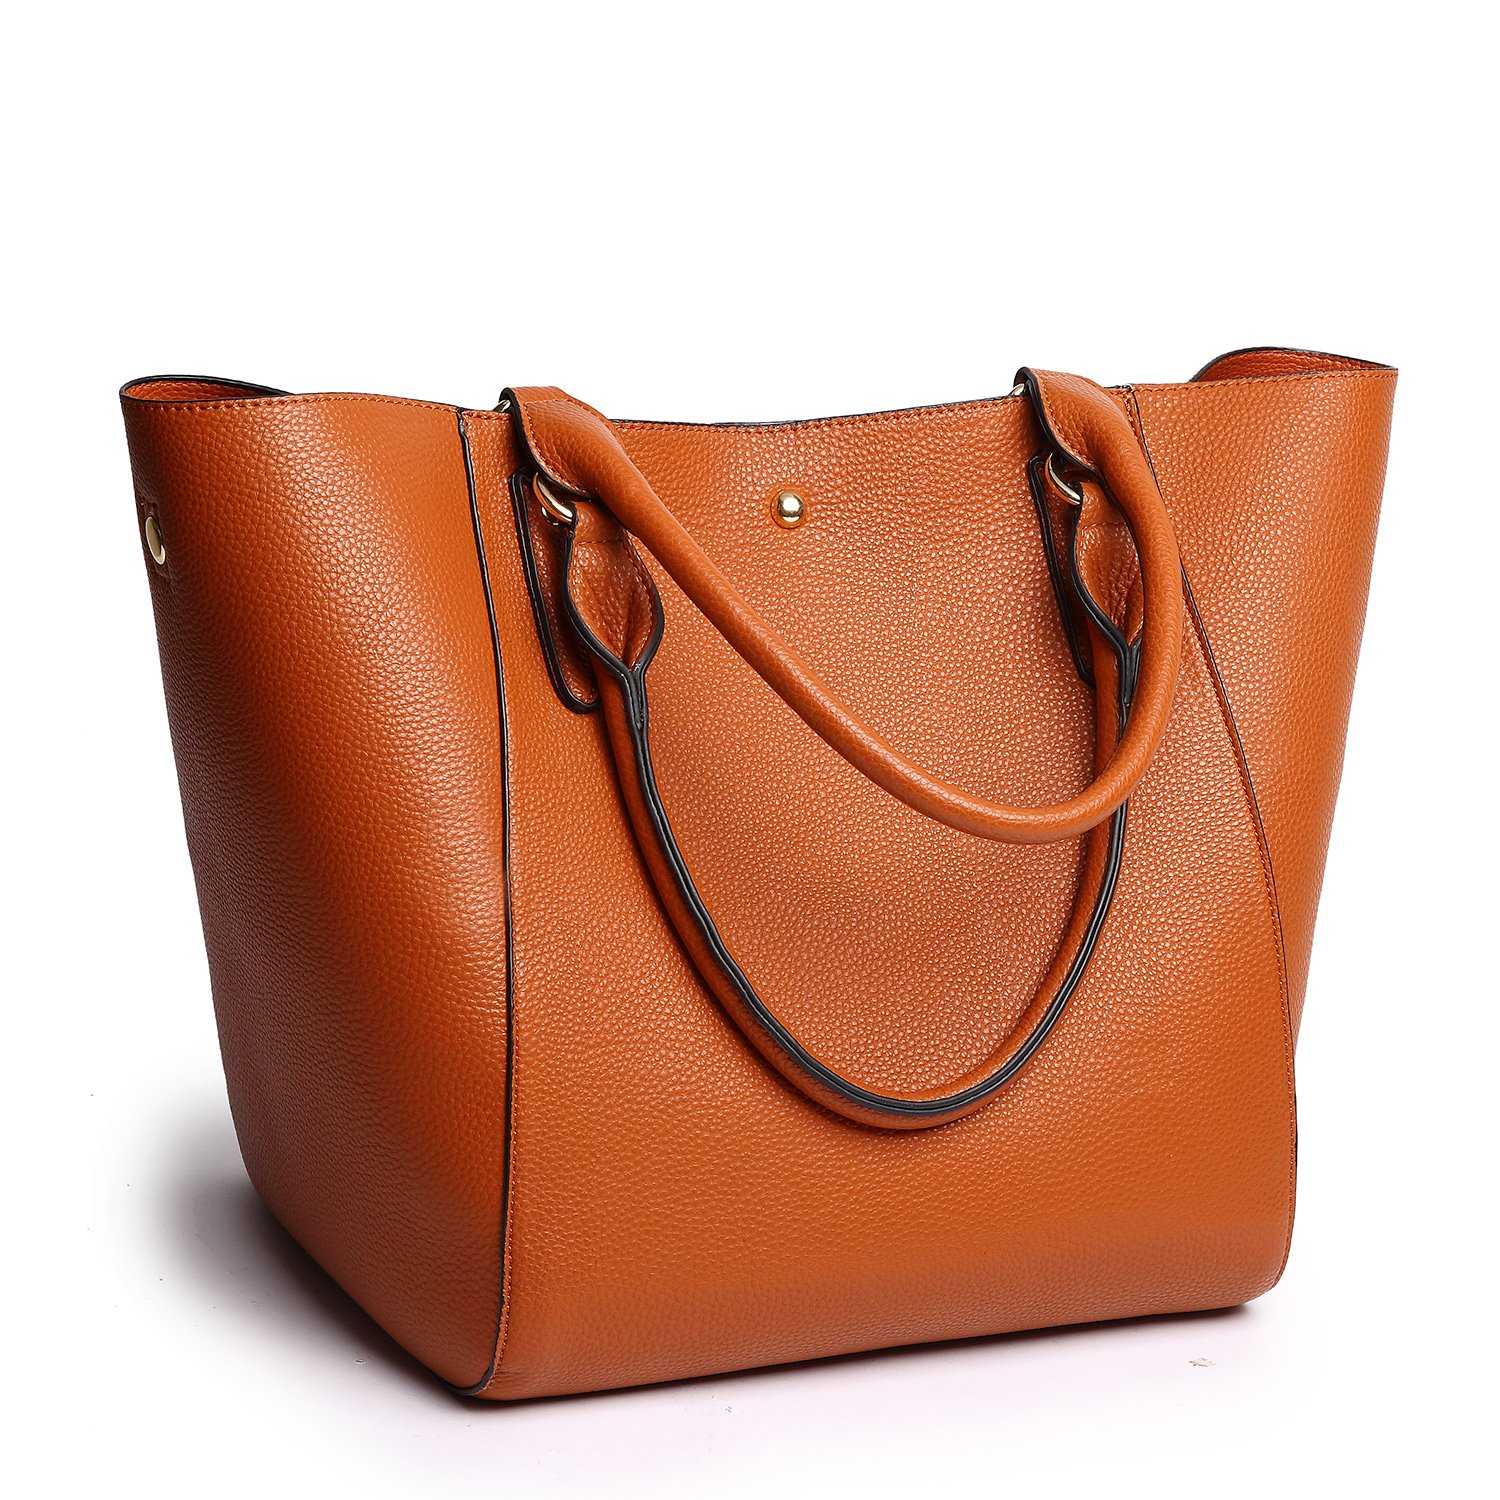 Tibes Large Women Top-Handle Handbag Pu Leather Tote Bag Satchel Brown by TIBES